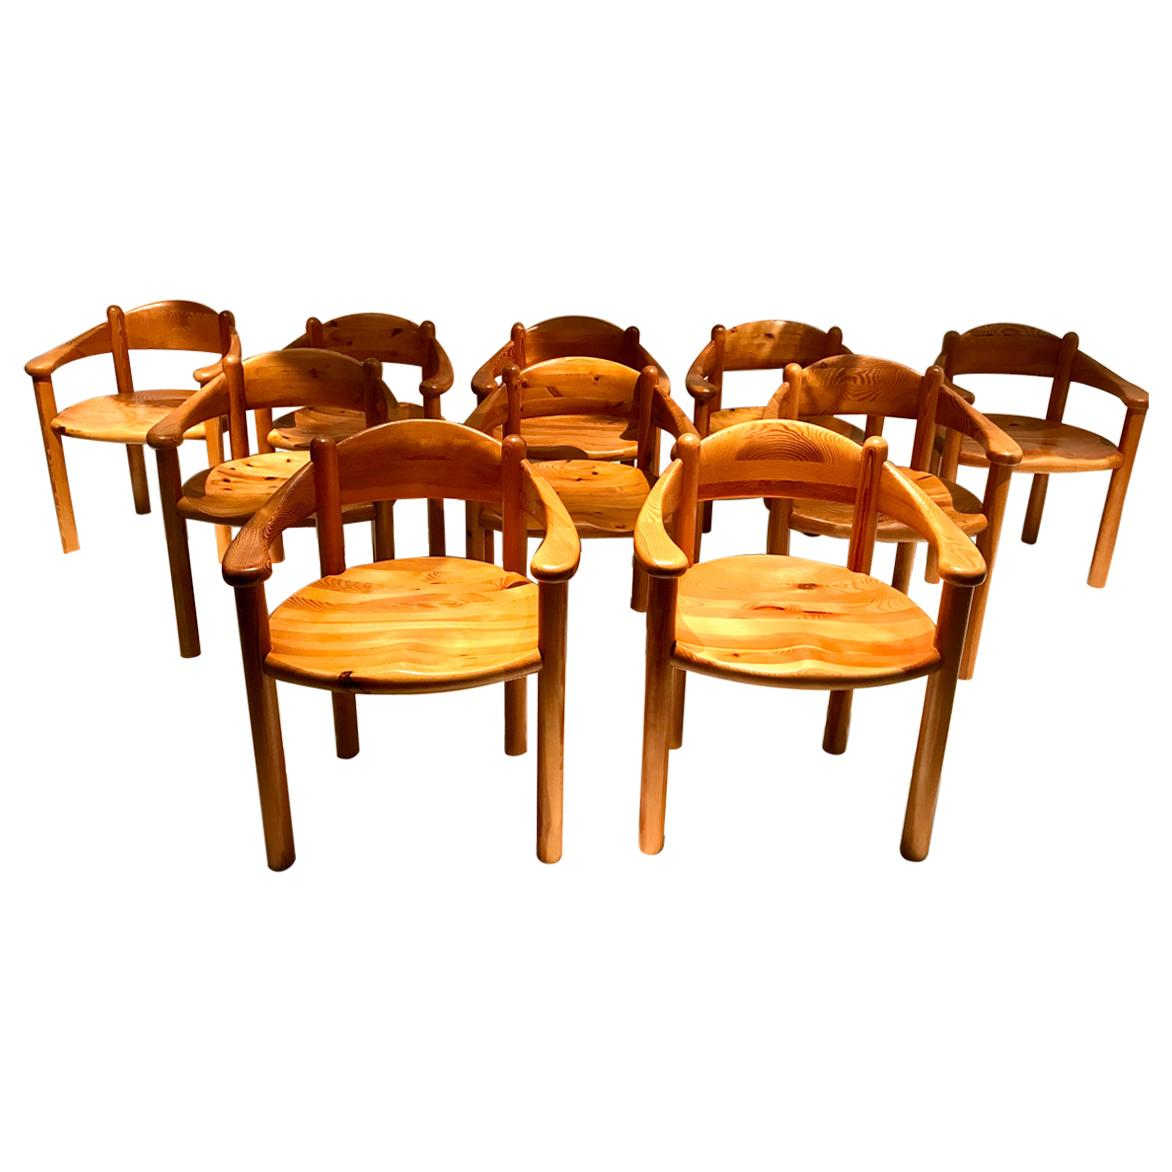 Rainer Daumiller Solid Pine Chairs, 1960s-1970s